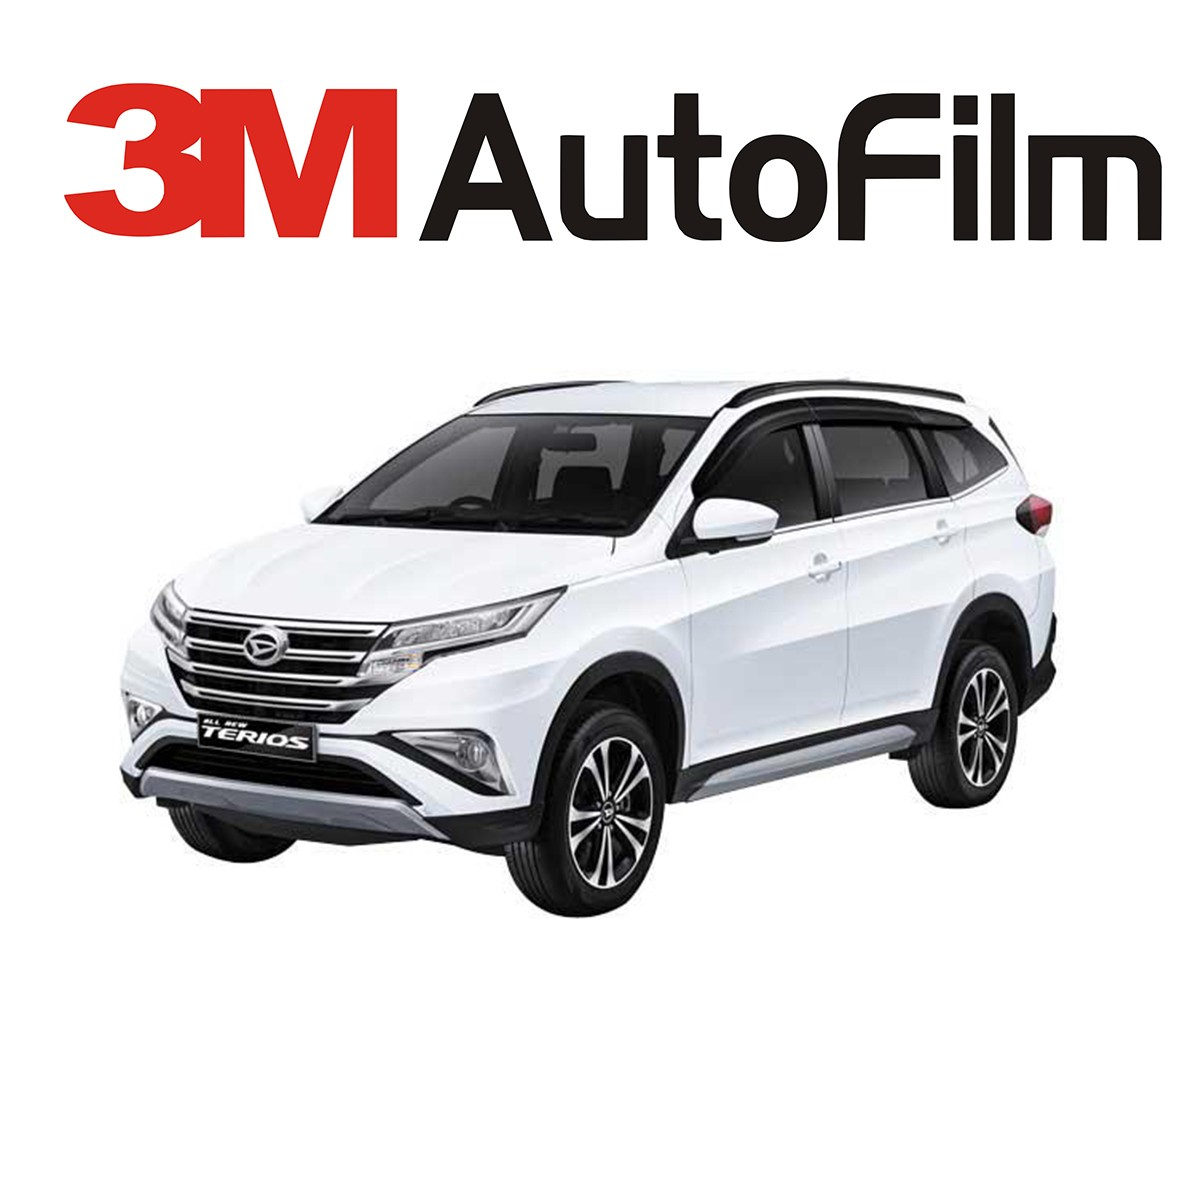 KACA FILM 3M BLACK BEAUTY - (DAIHATSU ALL NEW TERIOS) FULL KACA